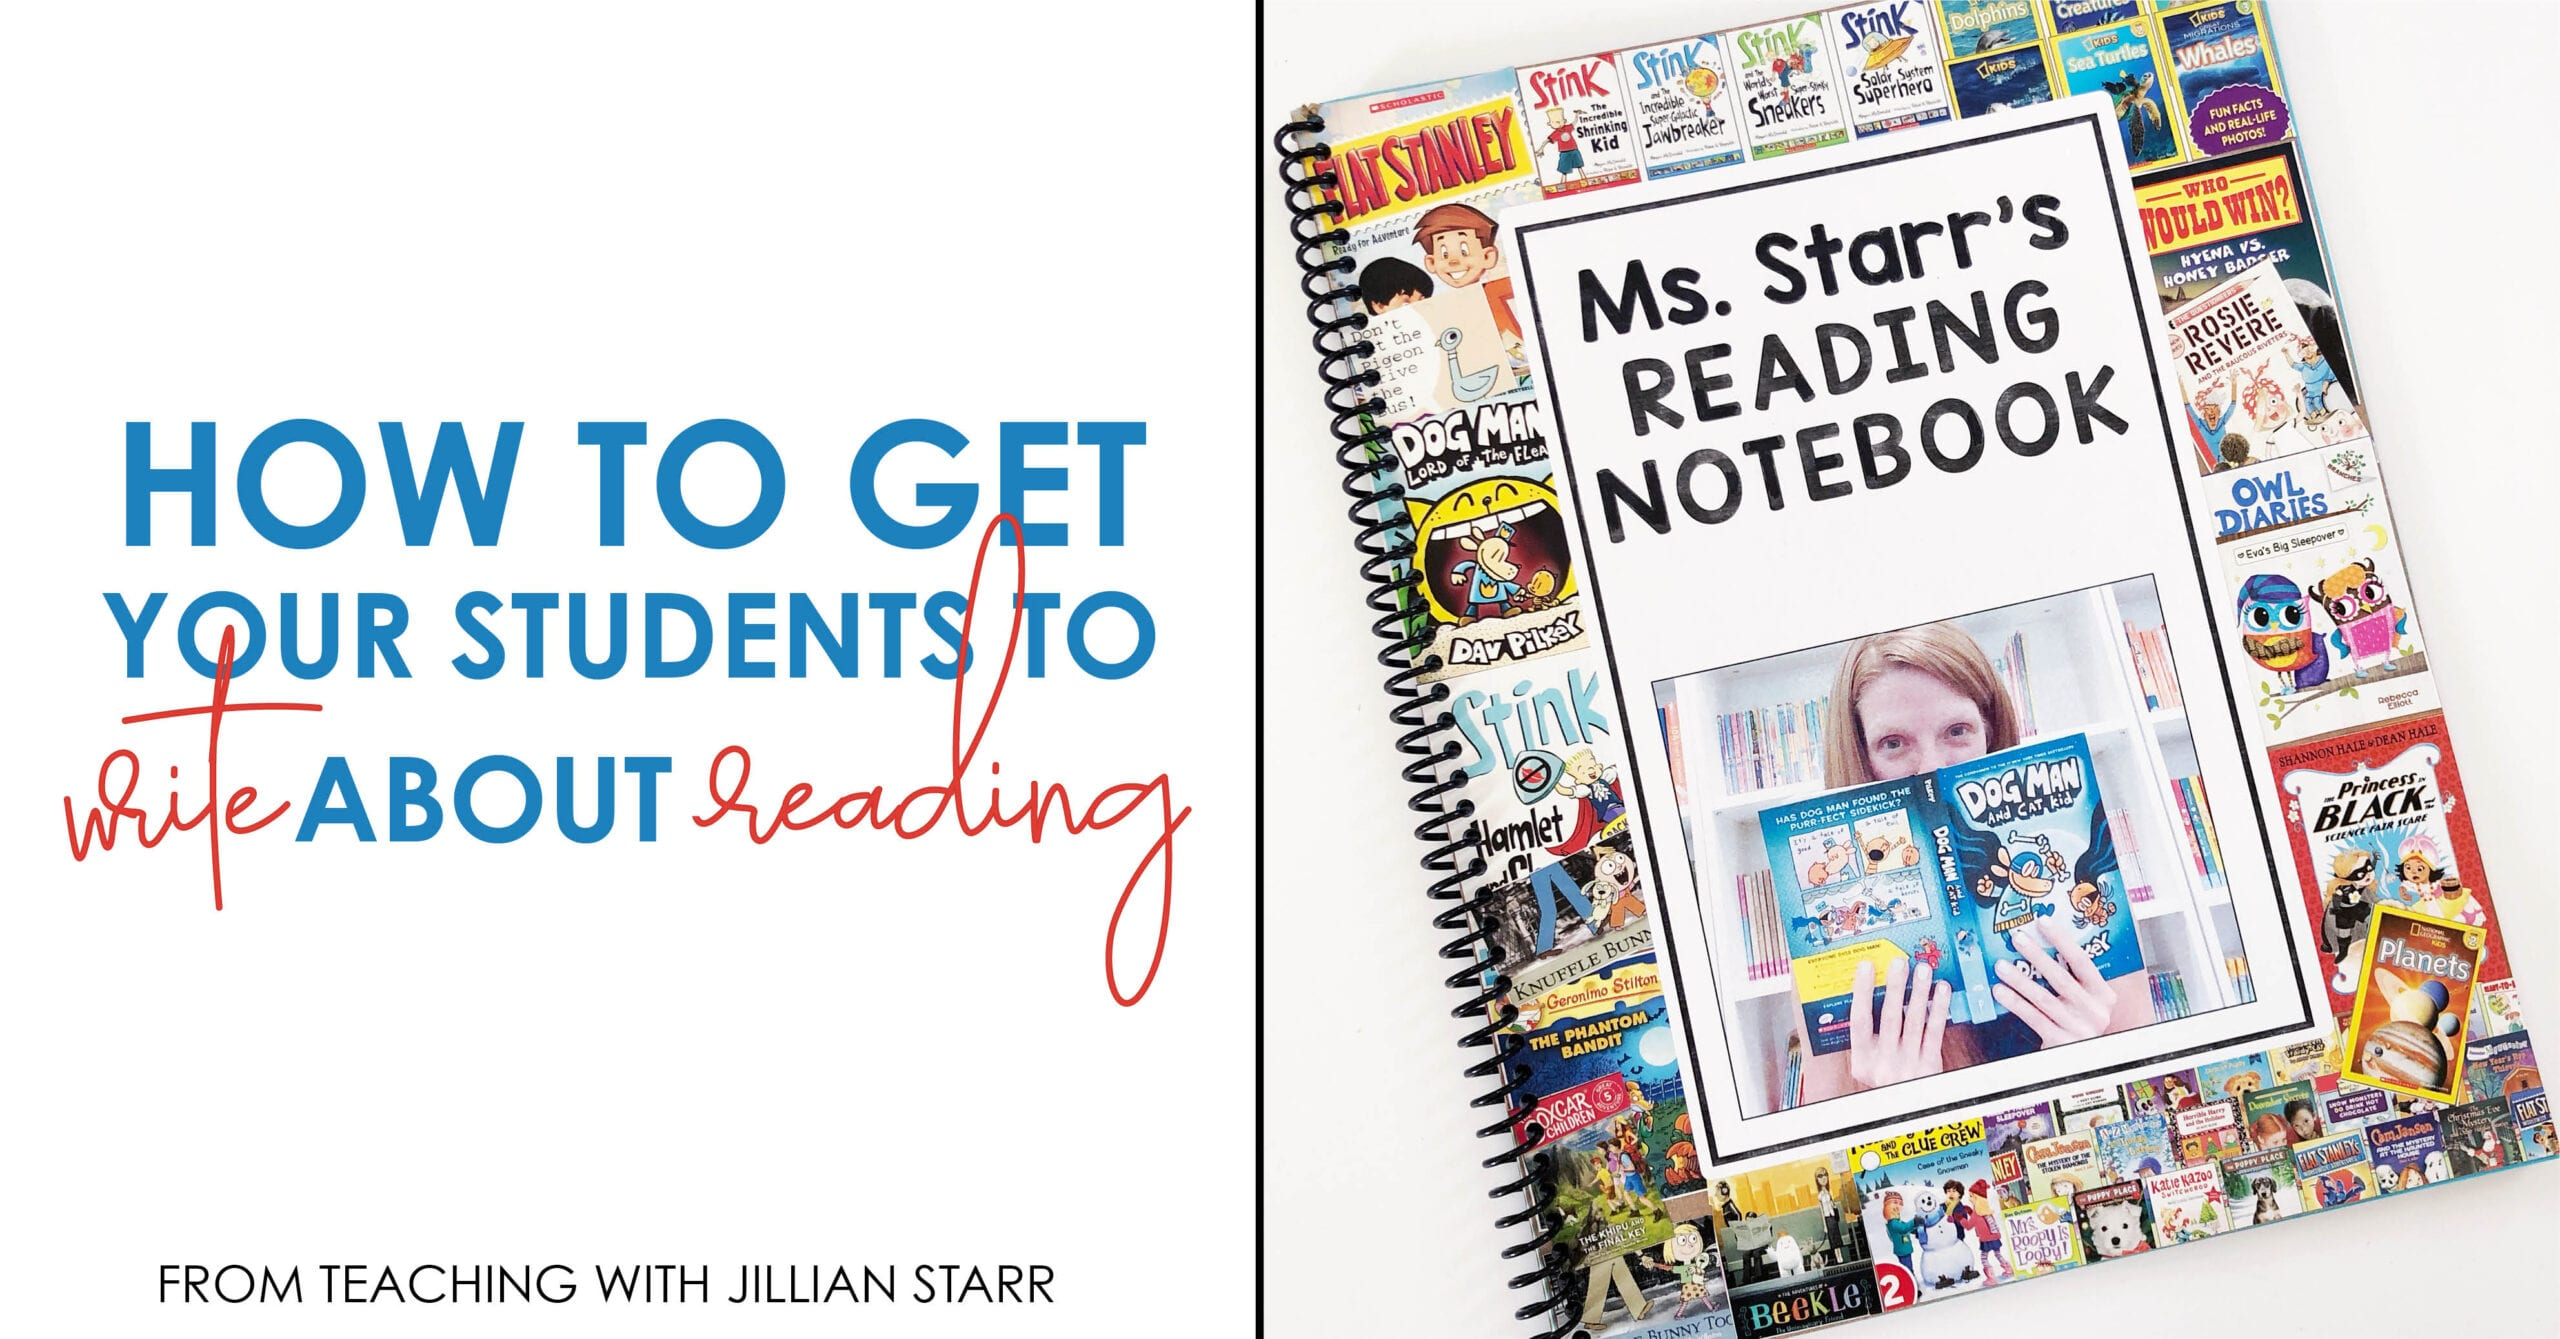 These FREE Reading Response Notebooks have been a GAME CHANGER in my classroom. In this post, I spell out how we created these individualized journal covers, how we used these reading response journals to get to know each other as readers, as well as how to get students invested and engaged in writing about reading! These journals are the PERFECT idea for any literacy curriculum, and best of all? They're FREE! Click to grab your free template download now! Suitable for 1st grade, 2nd grade and 3rd grade.